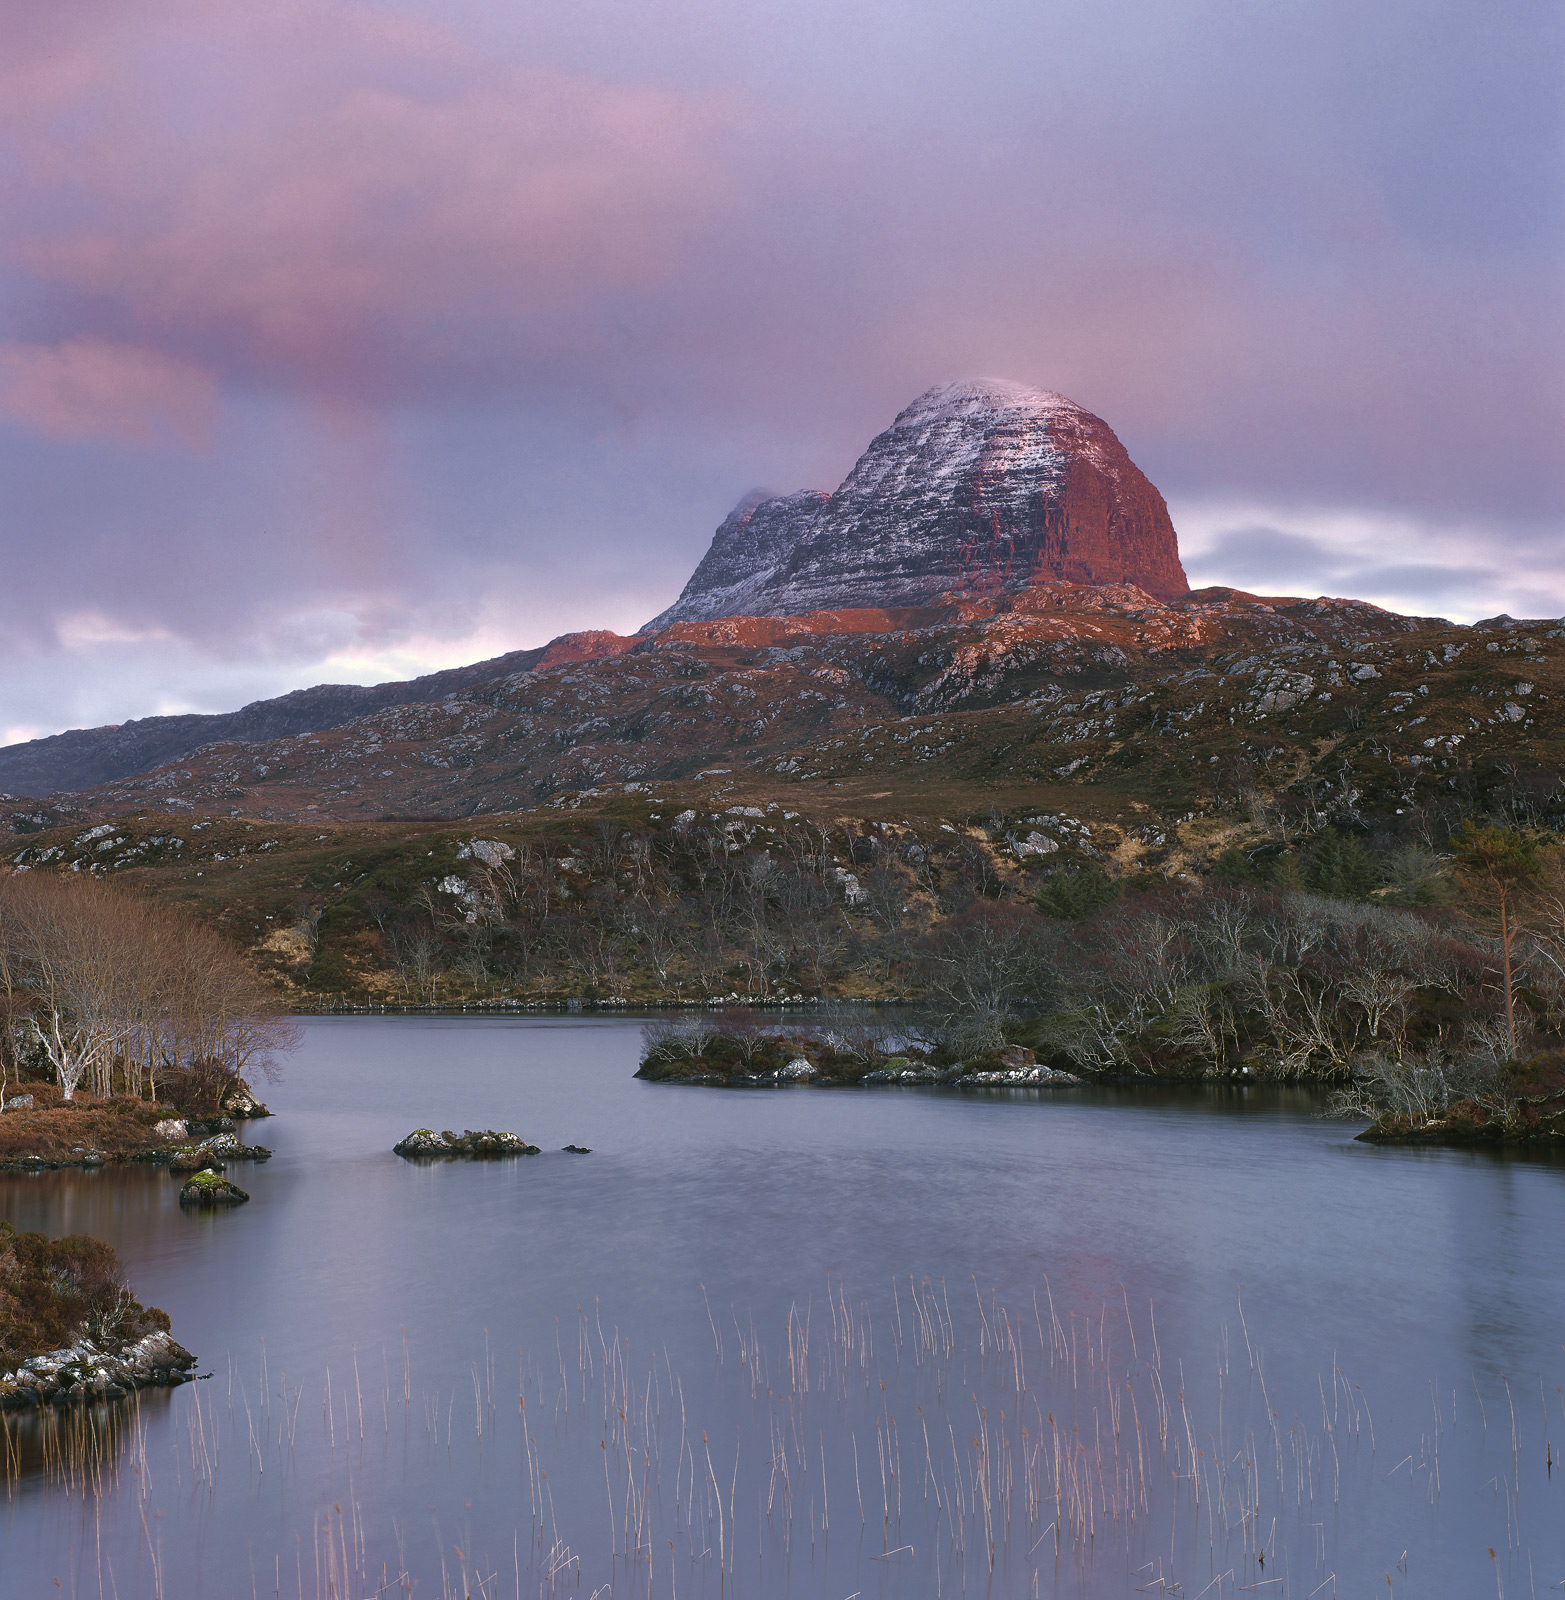 Suilven is one of the most wonderful of the Assynt peaks having a really quite iconic appearance to it. Not everyone agrees...